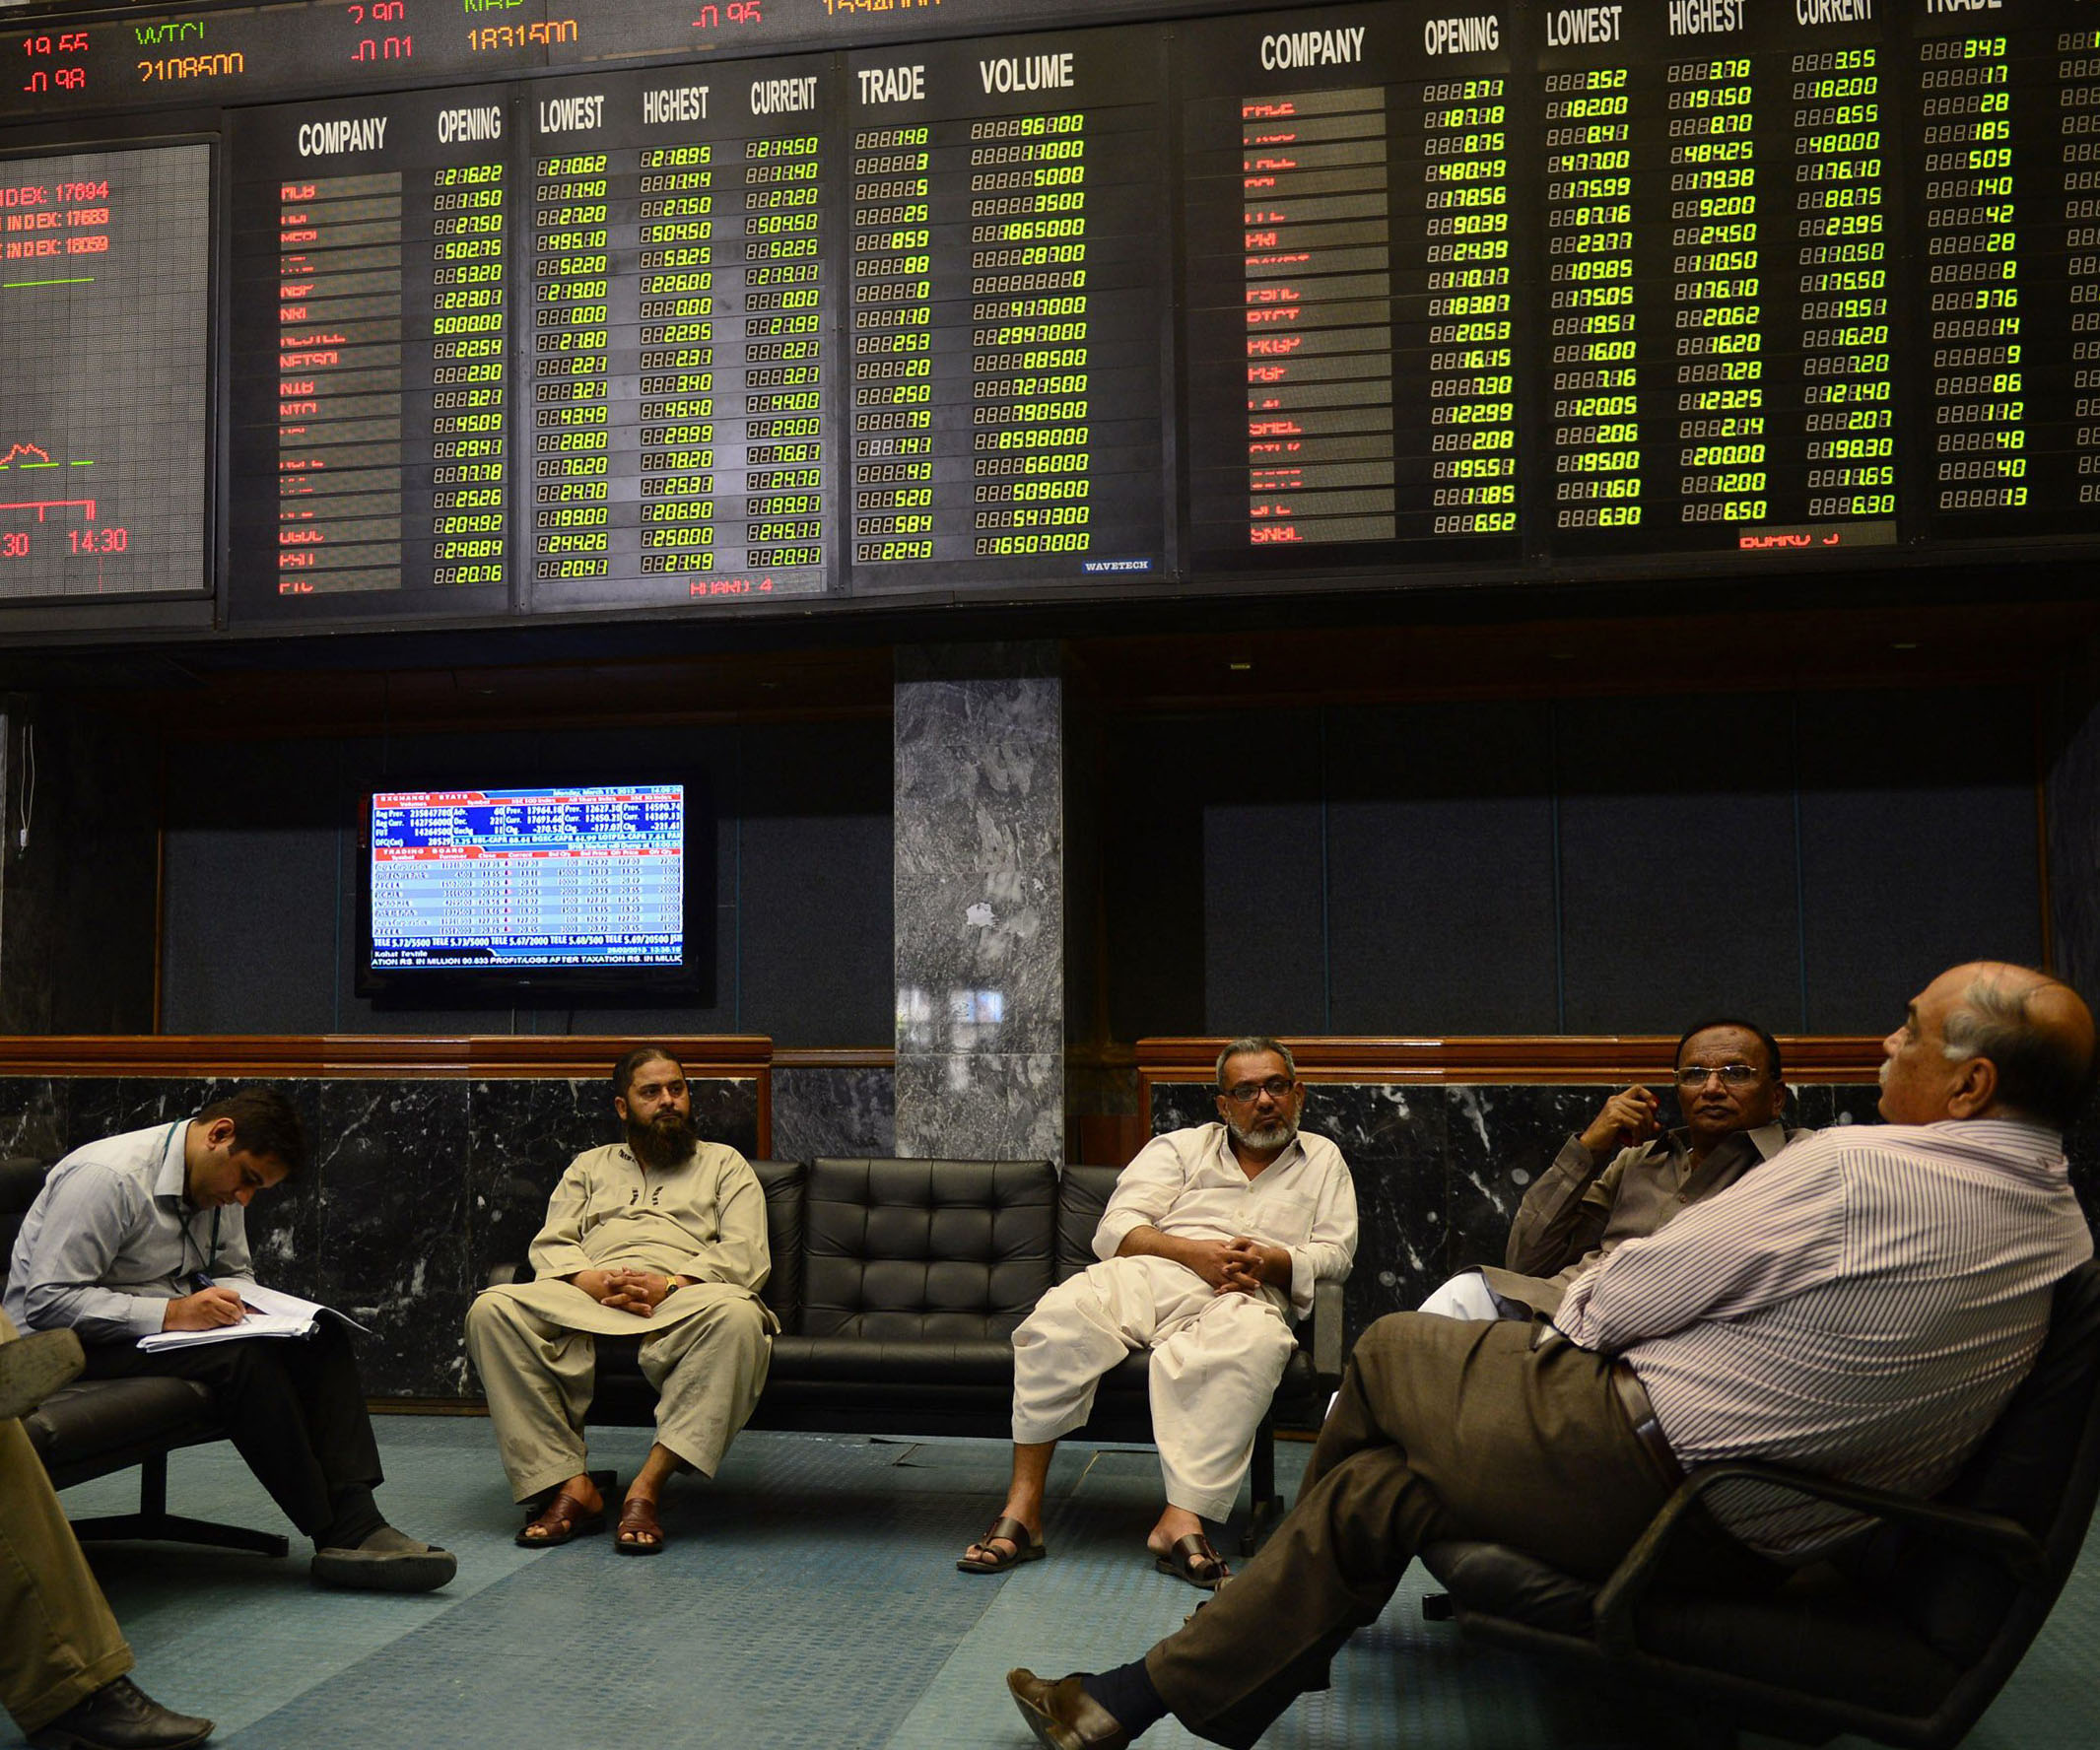 stock-market-kse-100-index-photo-afp-2-2-2-3-2-4-2-2-3-4-2-3-2-2-2-2-2-3-2-2